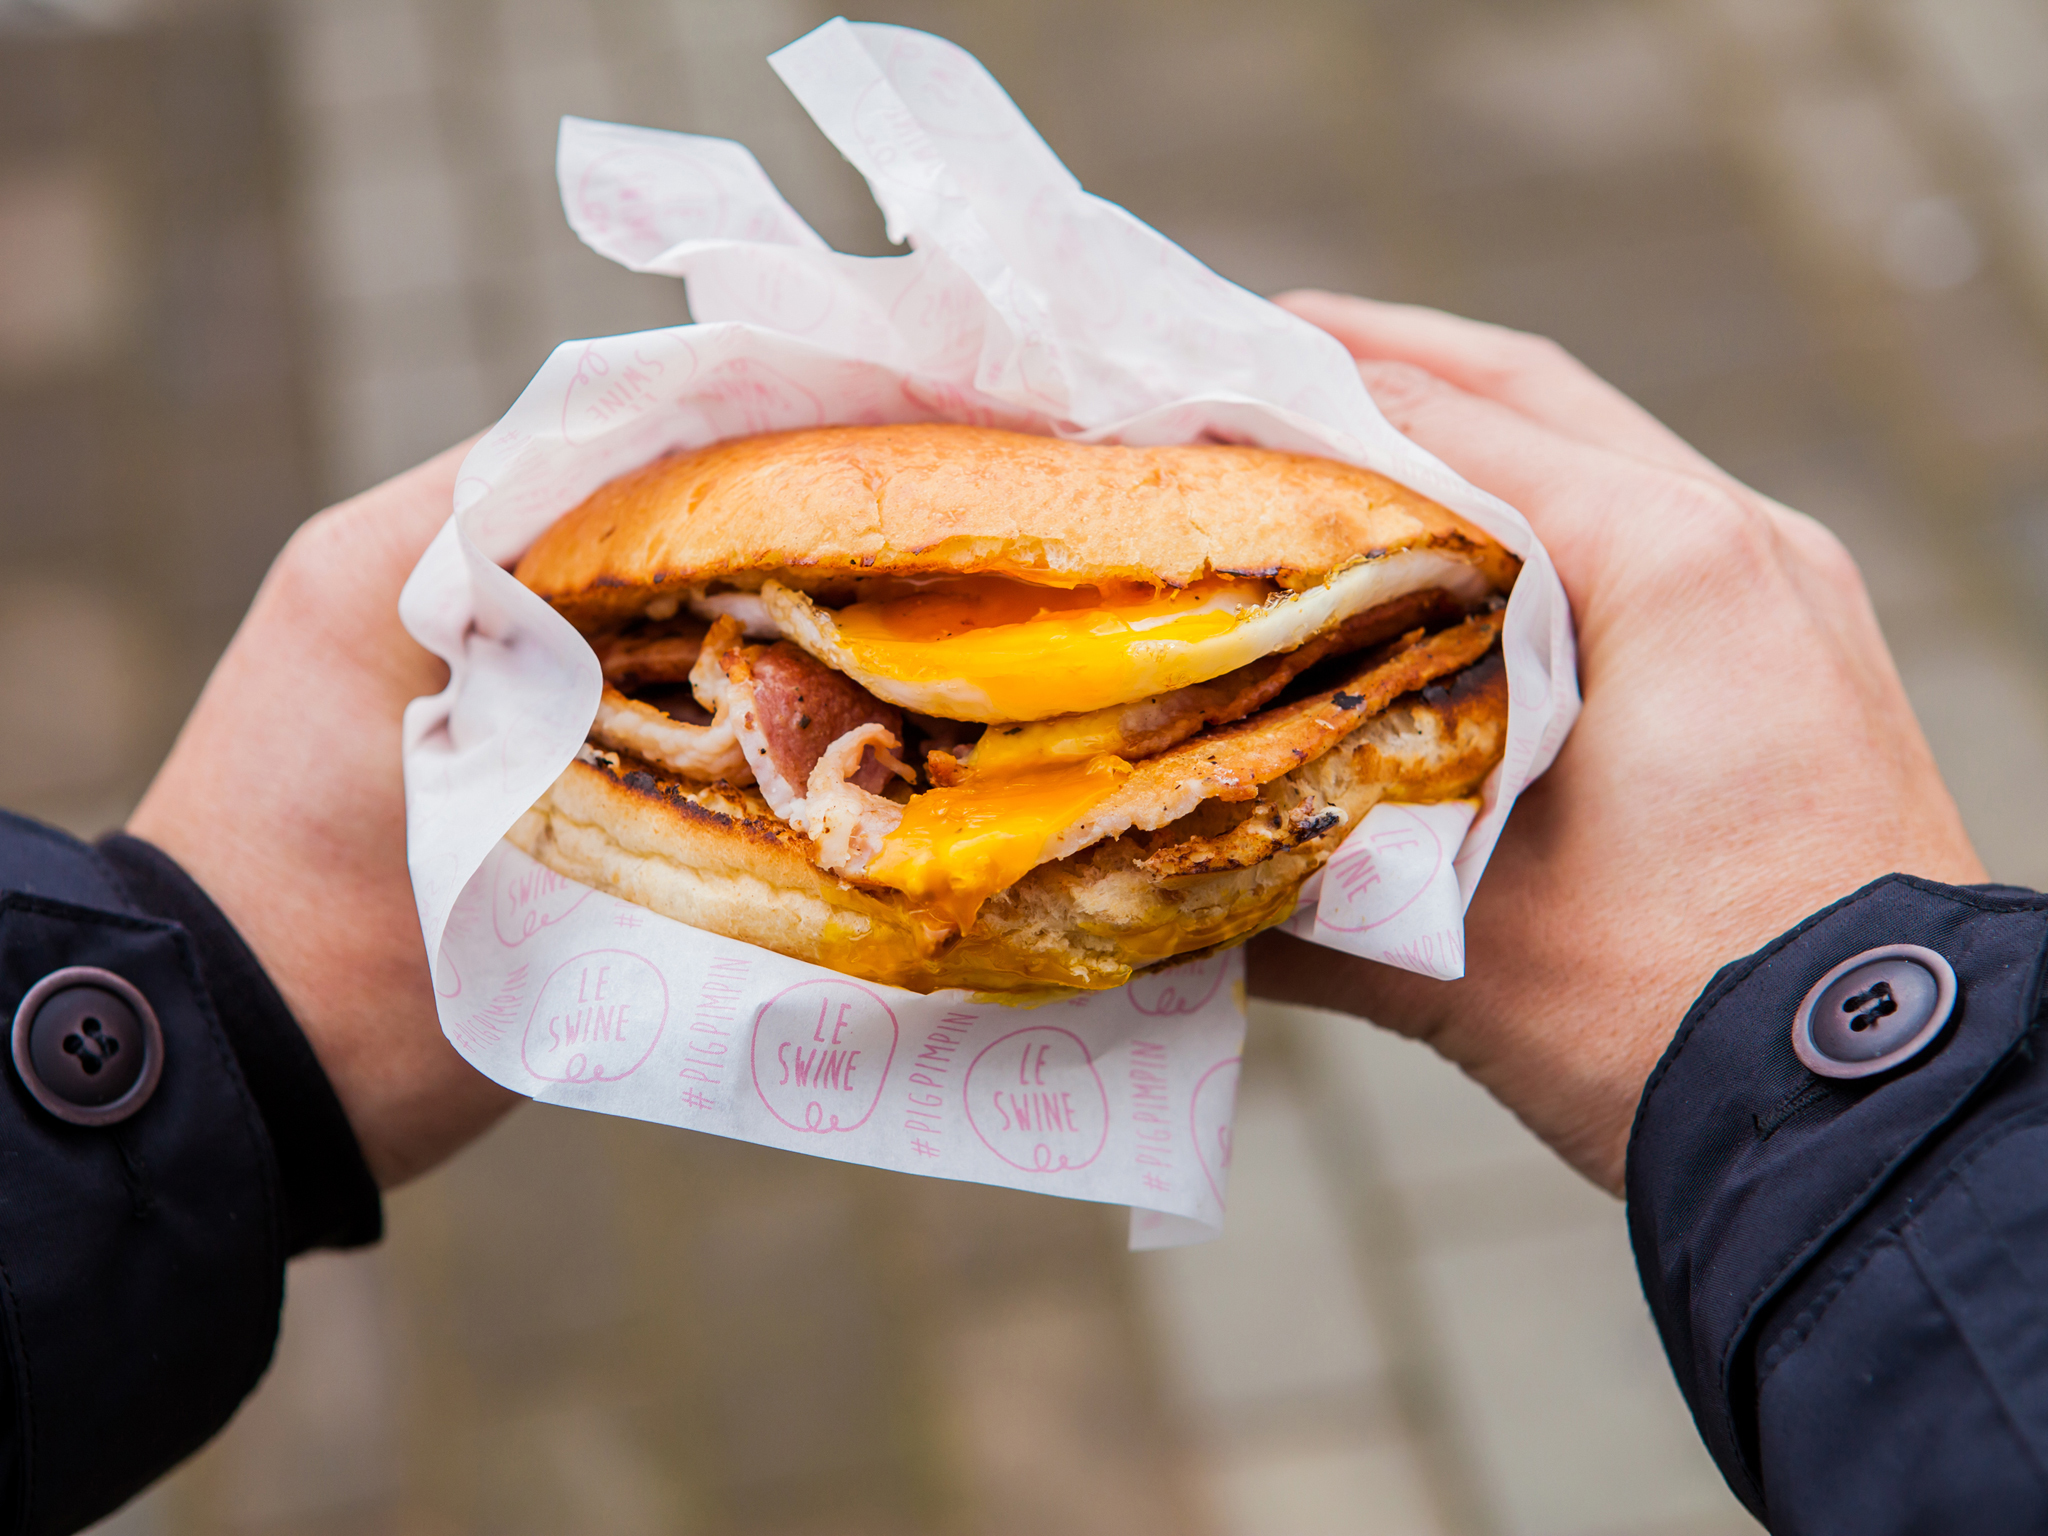 The people's top ten street food stalls in London - Le Swine